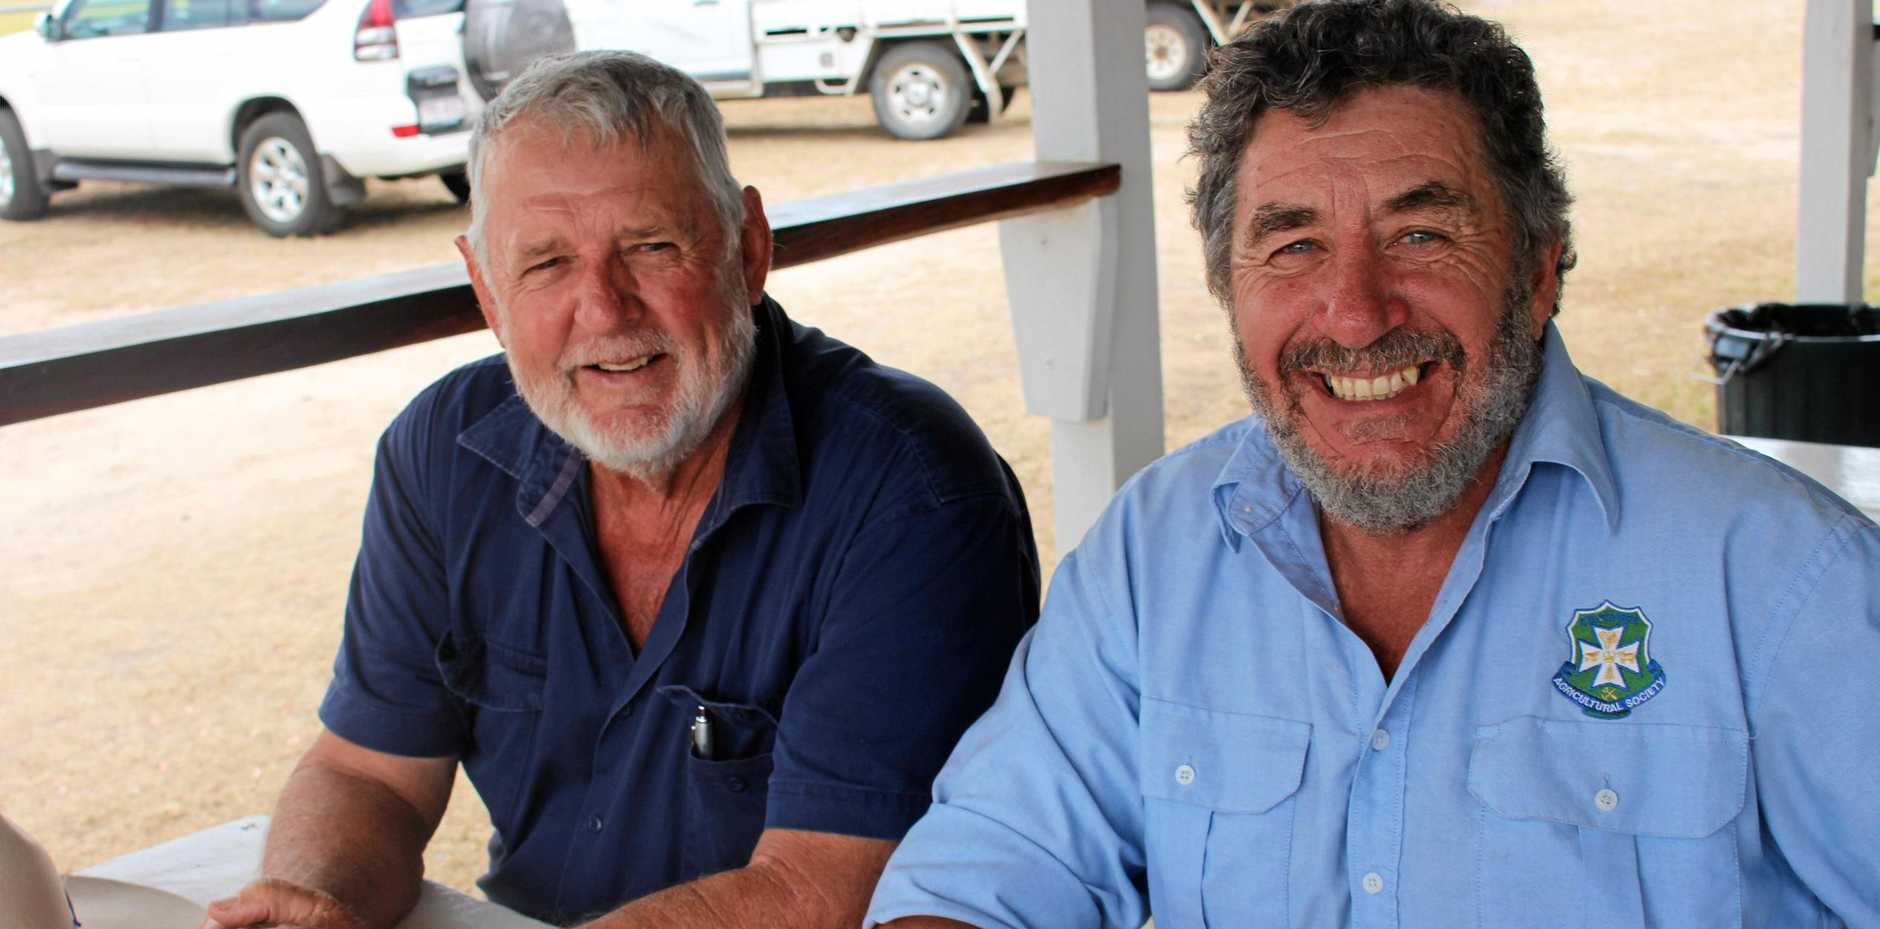 Tony Haig was hoping to buy while Glenn Crossman was looking to sell.